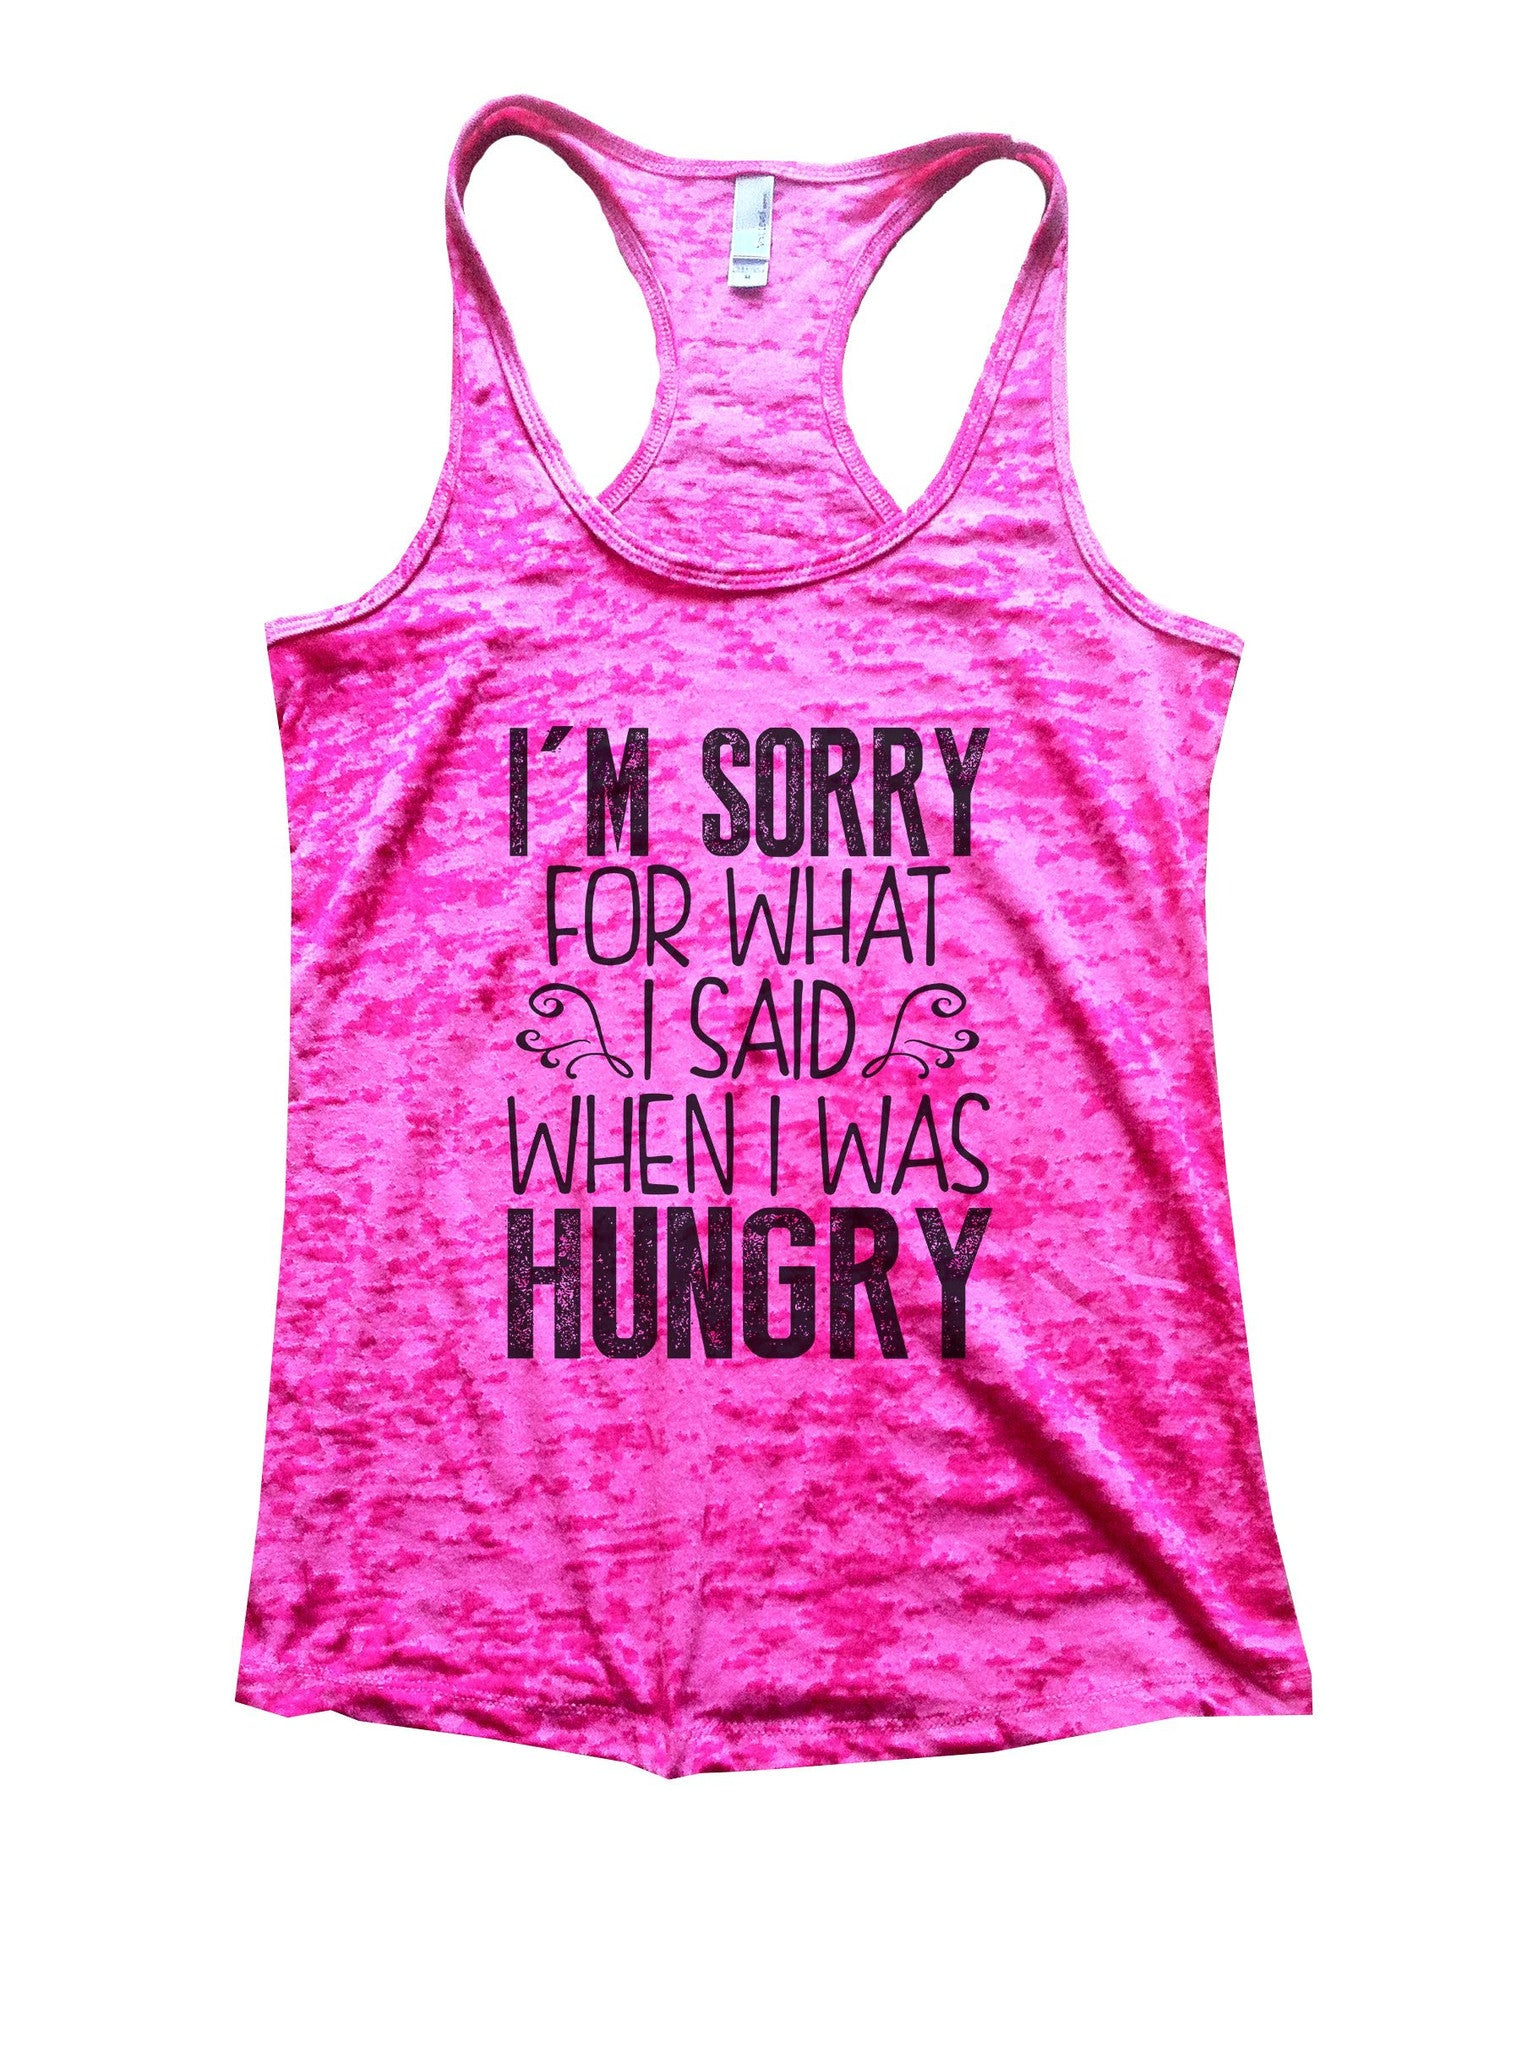 I'm Sorry For What I Said When I Was Hungry Burnout Tank Top By BurnoutTankTops.com - 952 - Funny Shirts Tank Tops Burnouts and Triblends  - 5